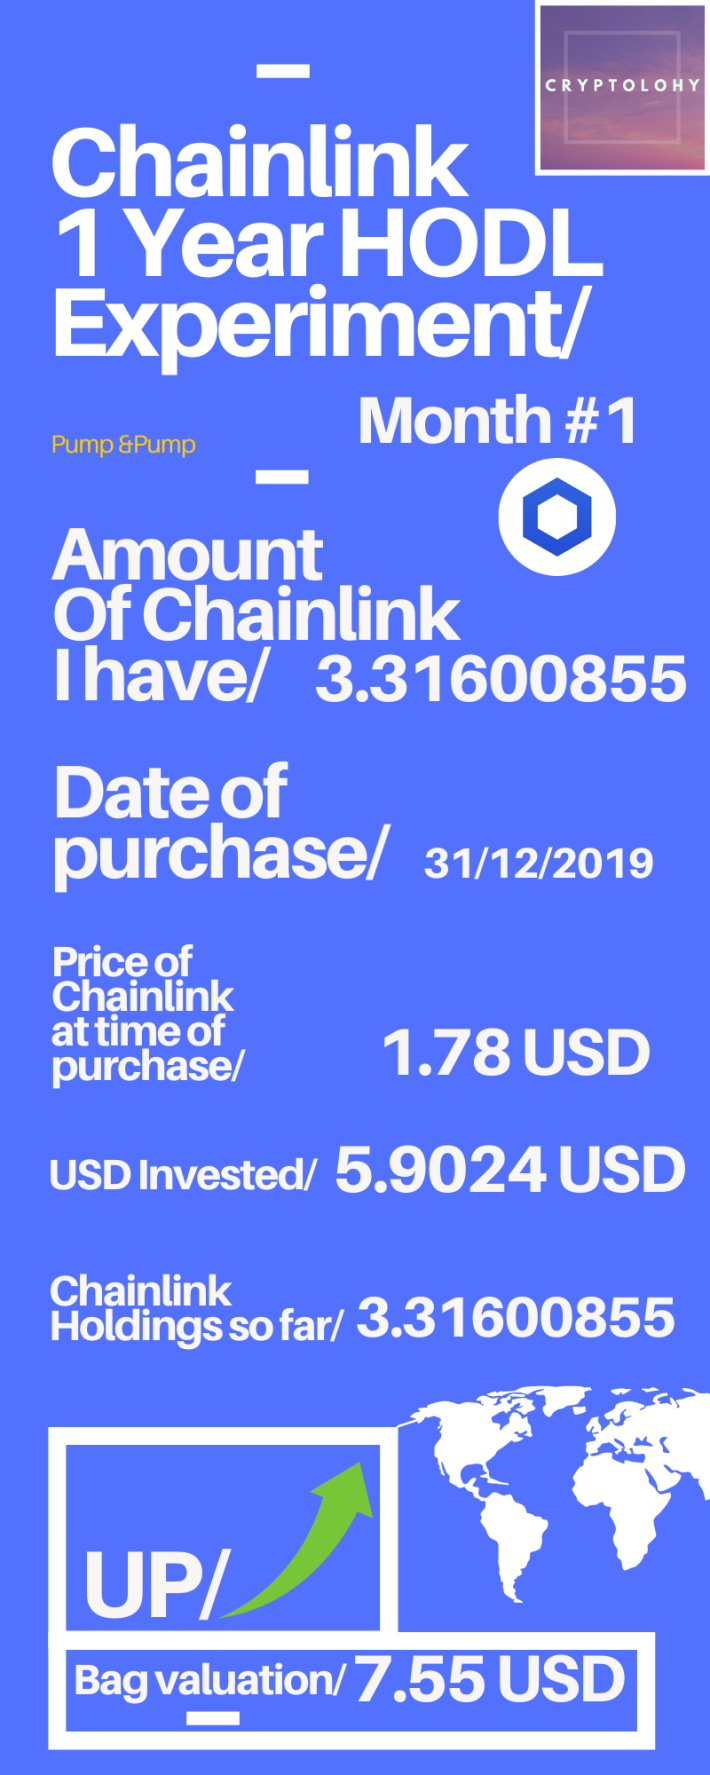 Chainlink Experiment